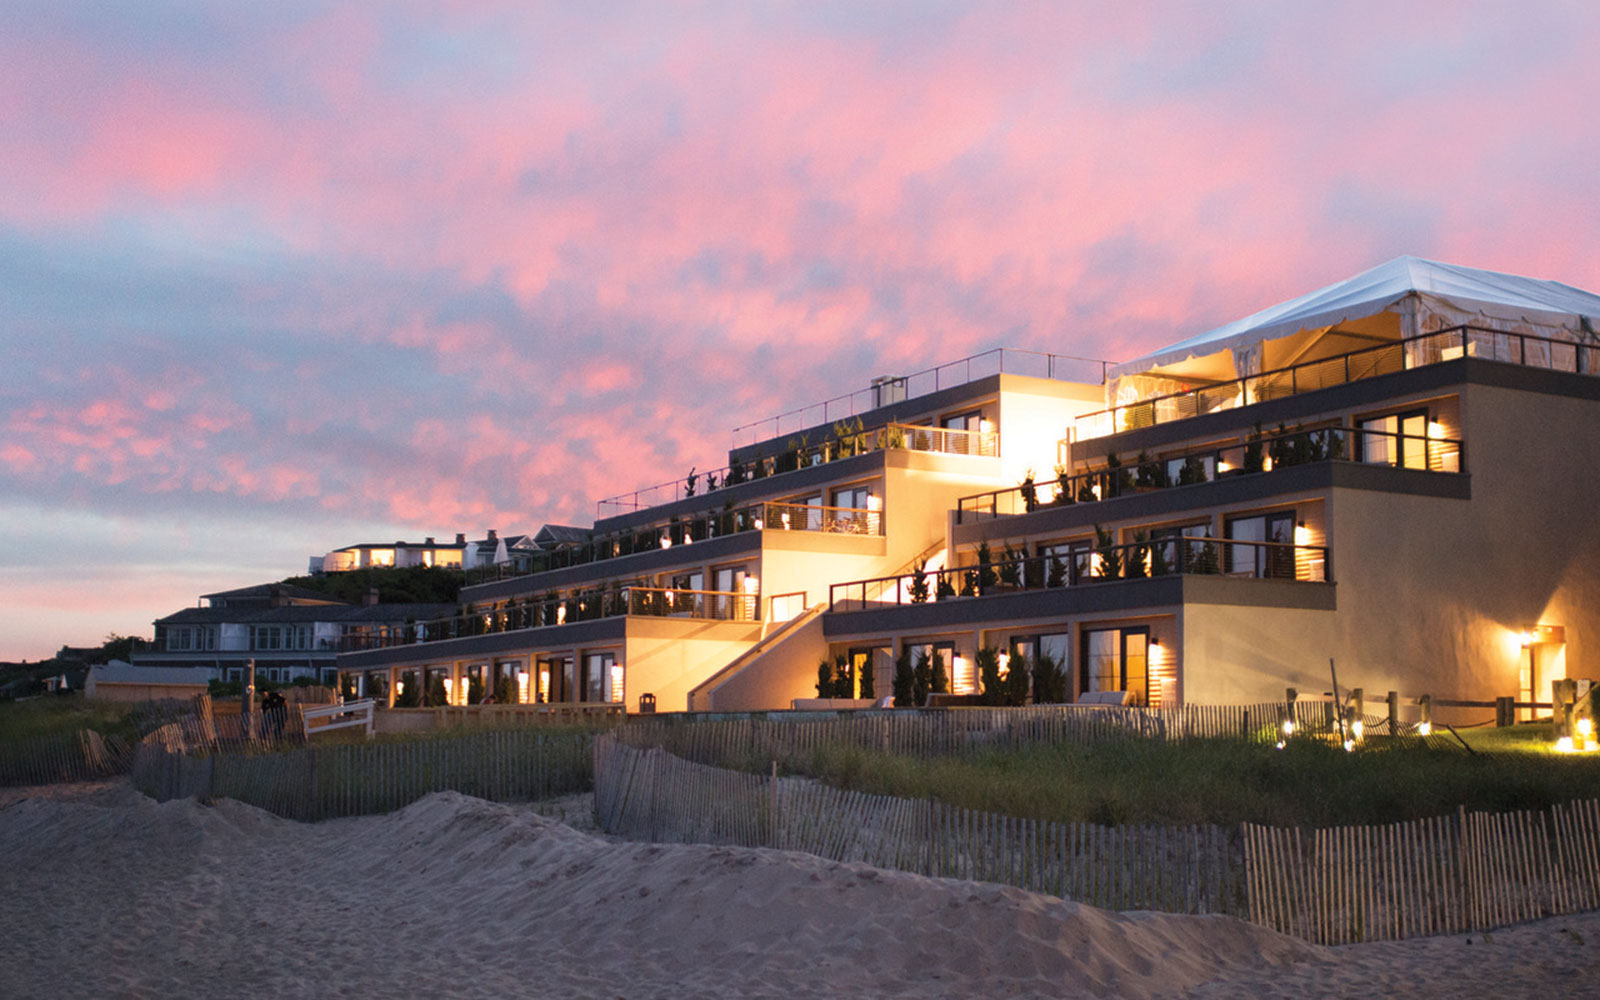 Nine Perfect Places For Your LGBT Destination Wedding: Montauk, New York